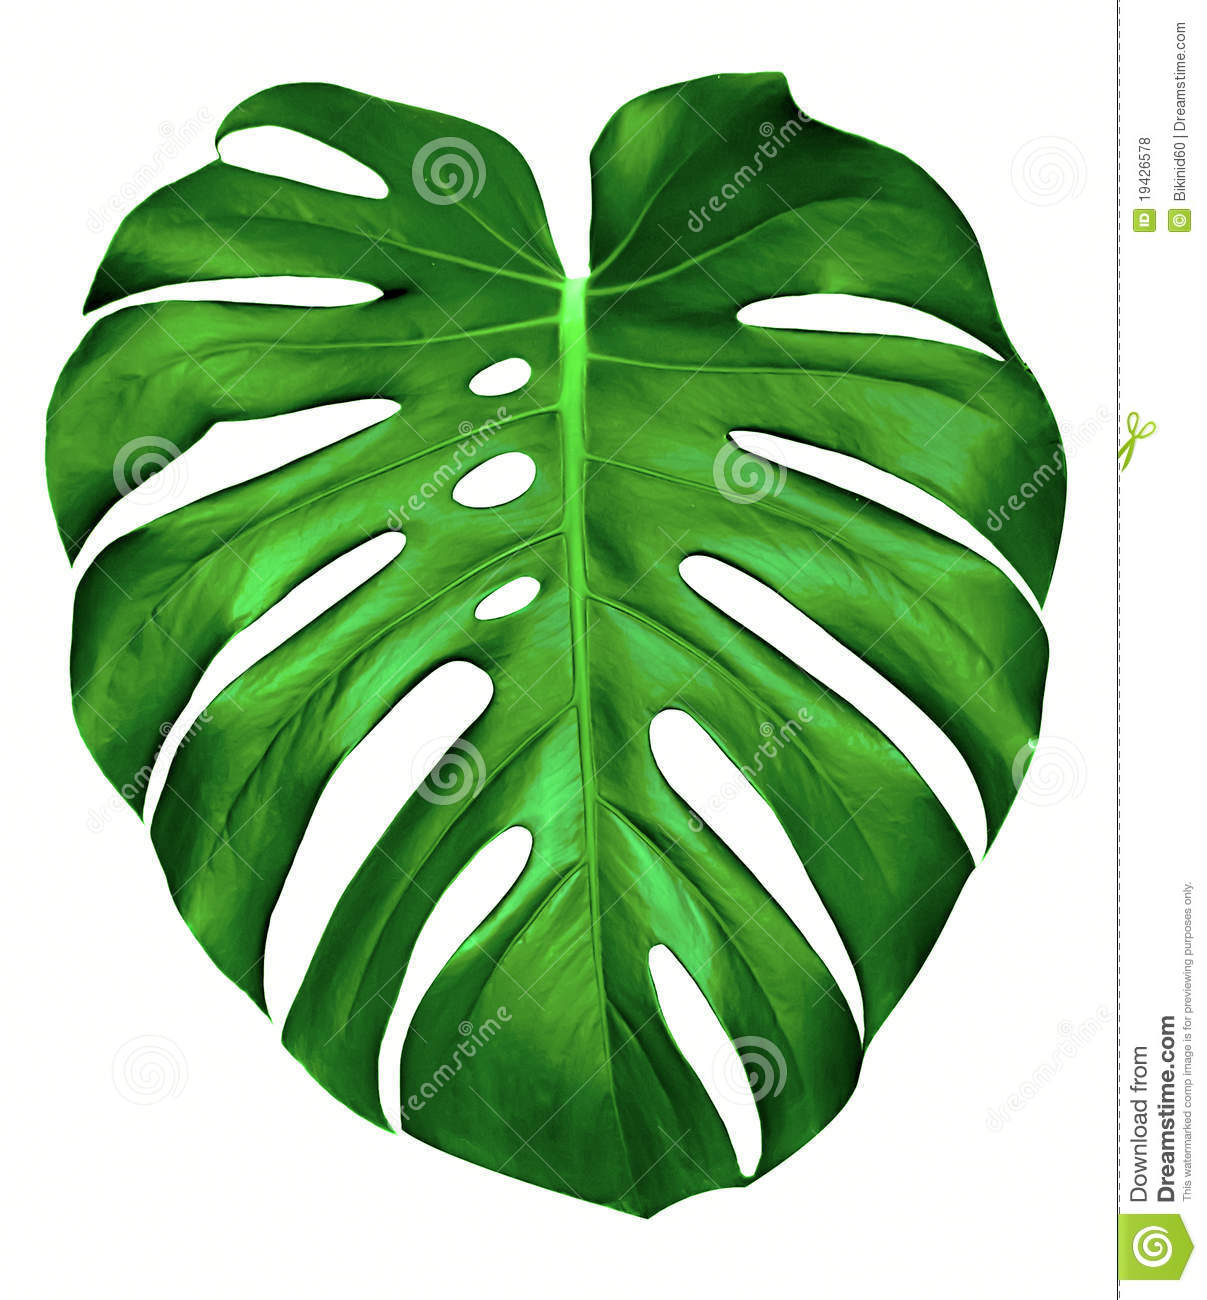 Monstera Leaf. Royalty Free Stock Photos - Image: 19426578